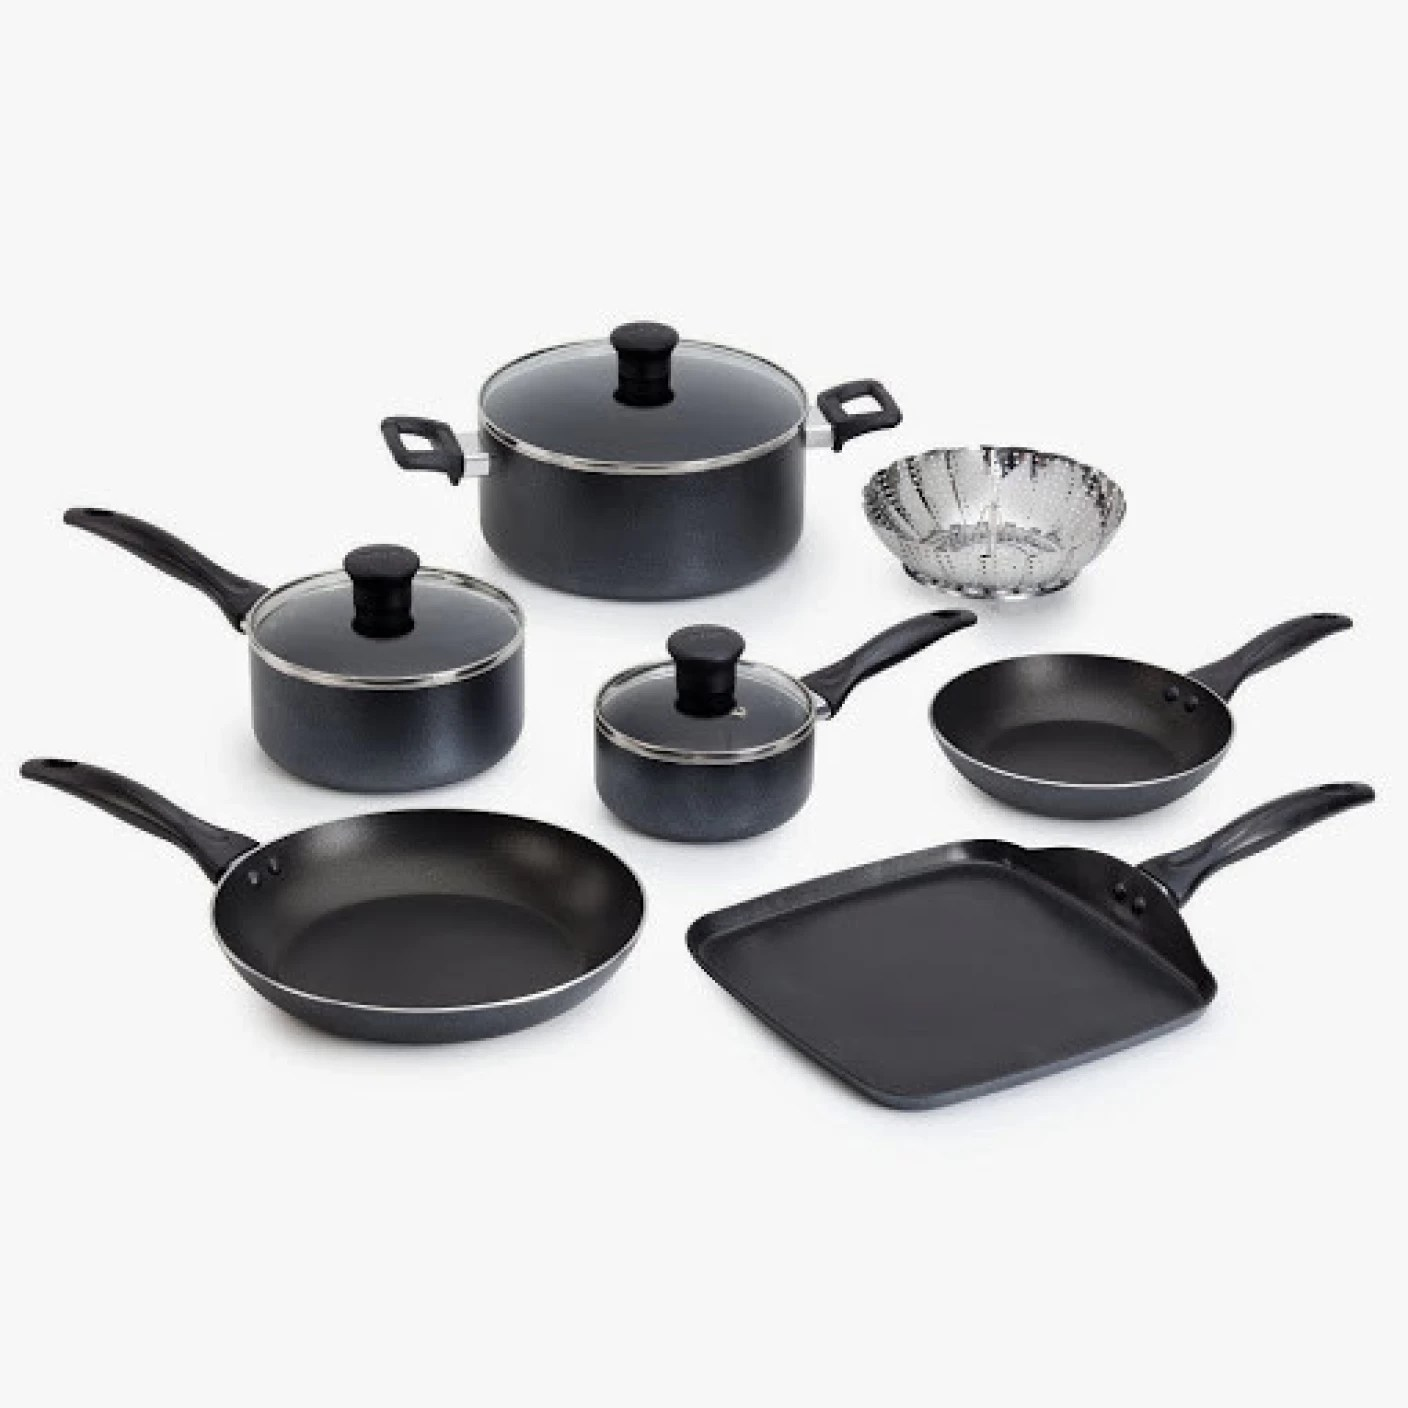 Tefal Pan Set Tefal Delight Cookware Set Price In India Buy Tefal